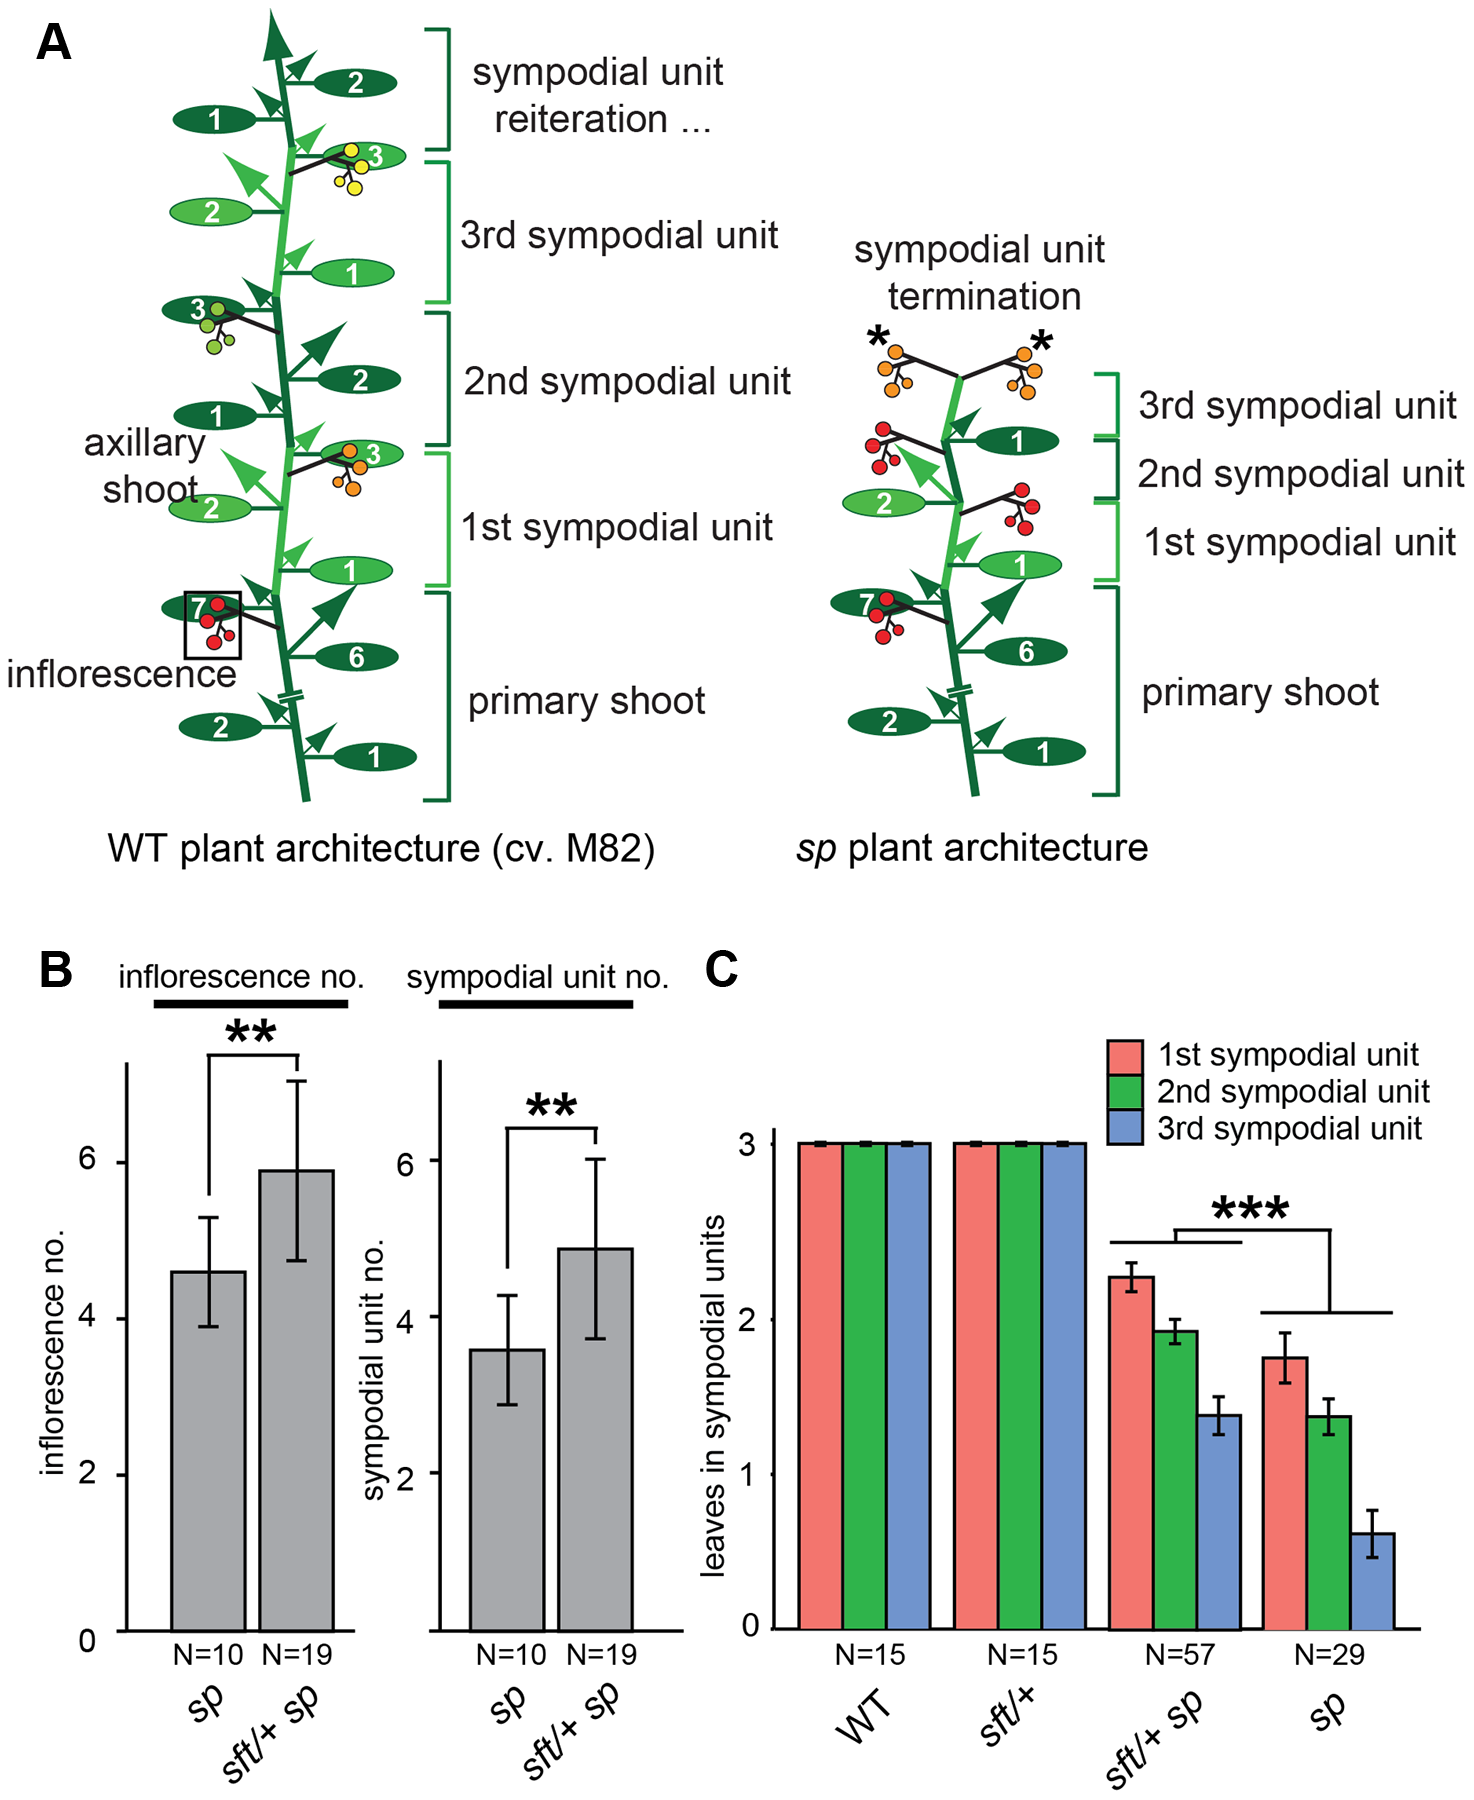 Precocious shoot termination in determinate tomatoes is partially suppressed by <i>sft/</i>